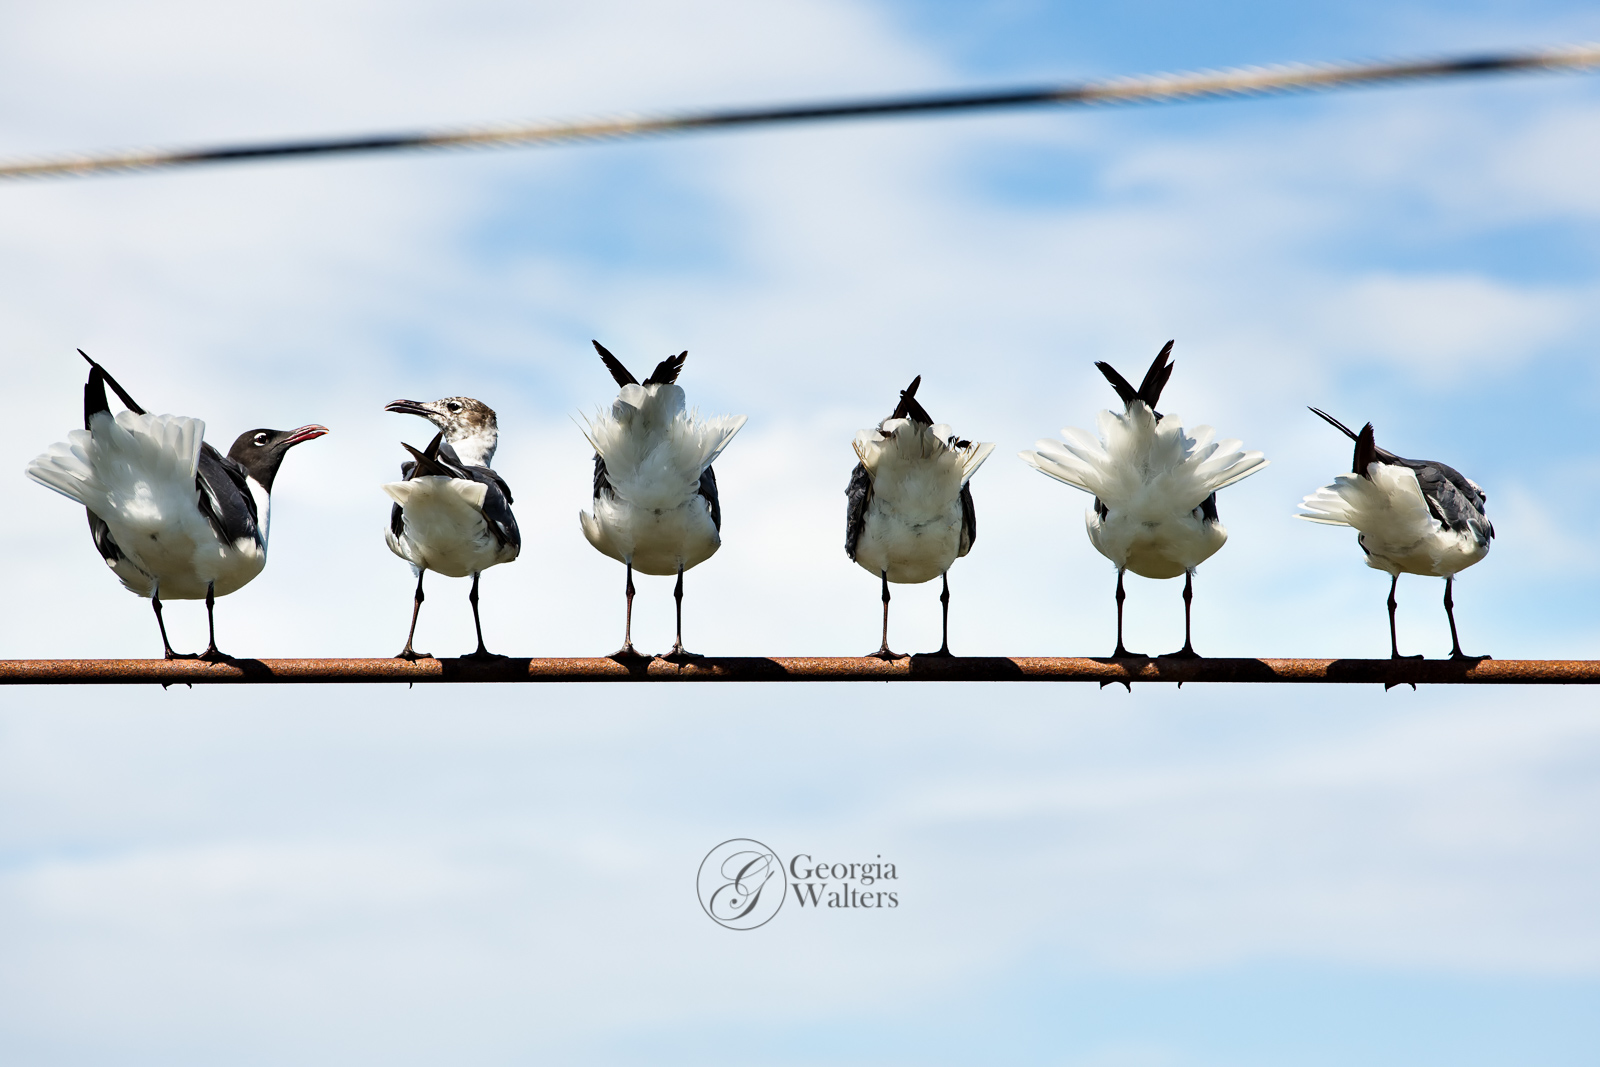 Seagulls waiting on a guide wire, arguing.